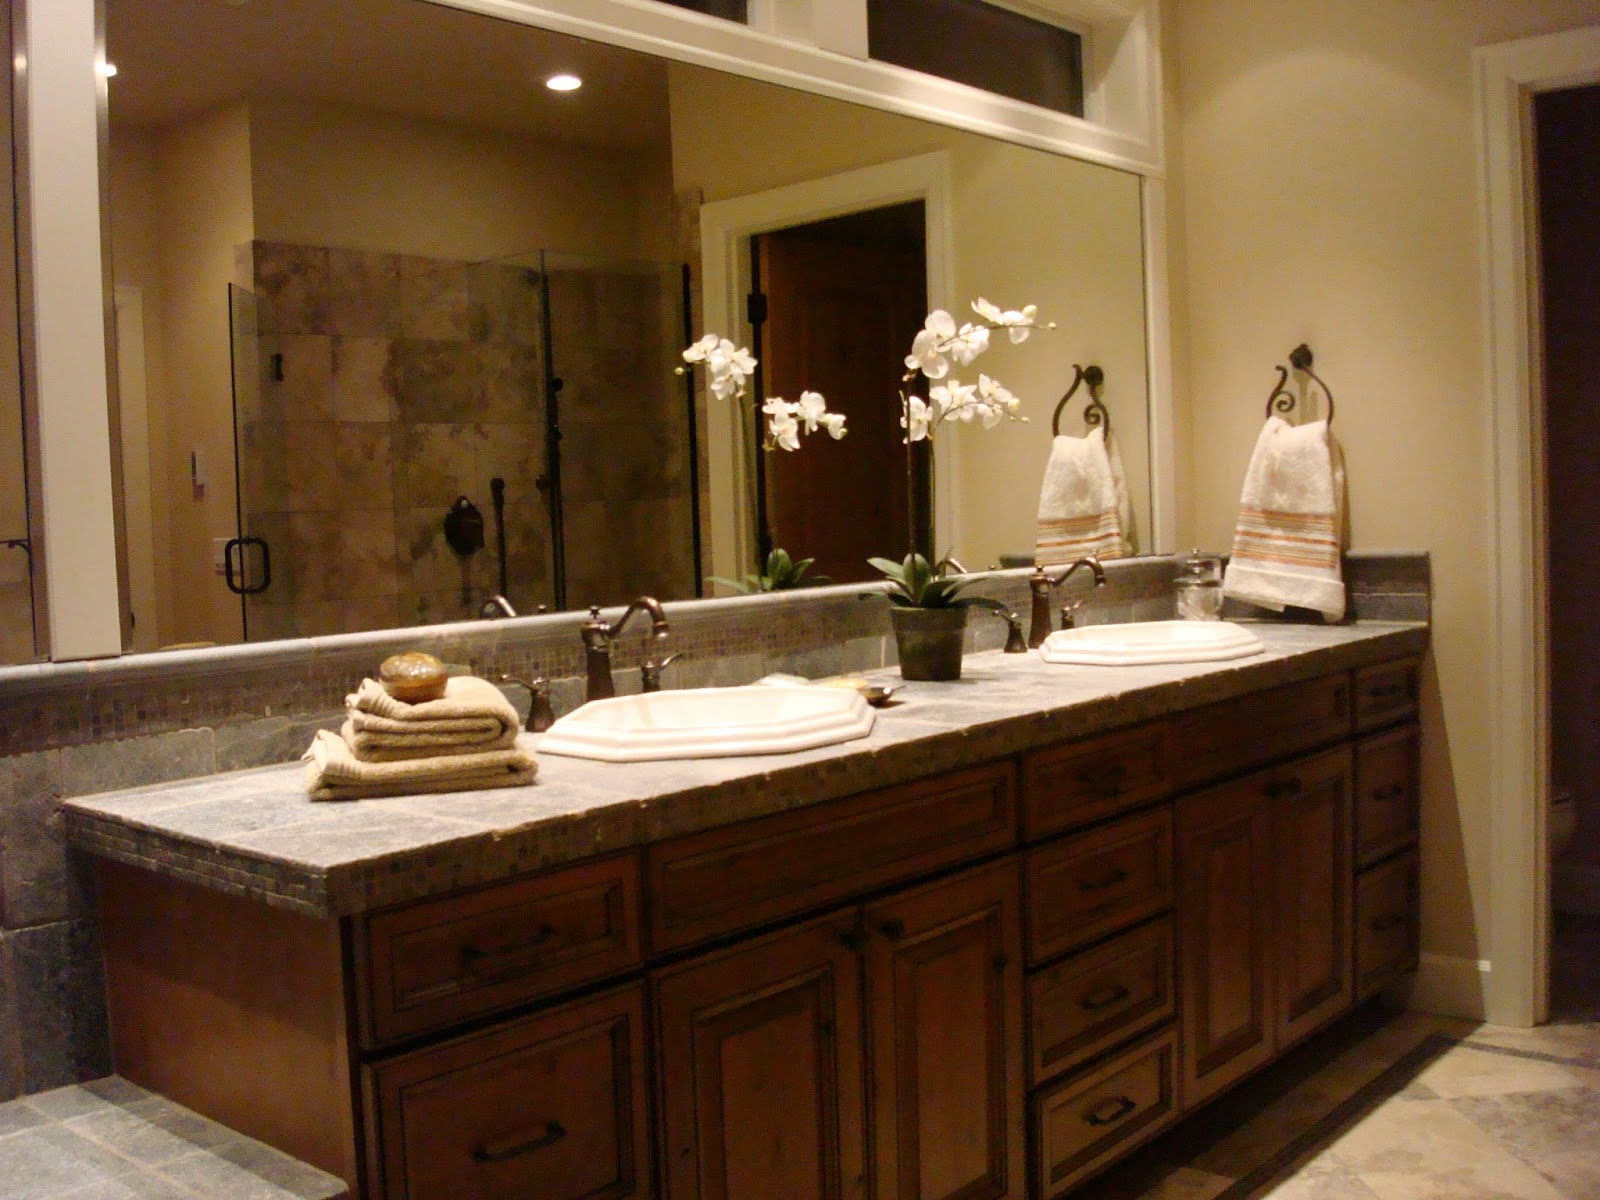 30 Custom Built Cabinets for Master Bathroom Vanity Designed with